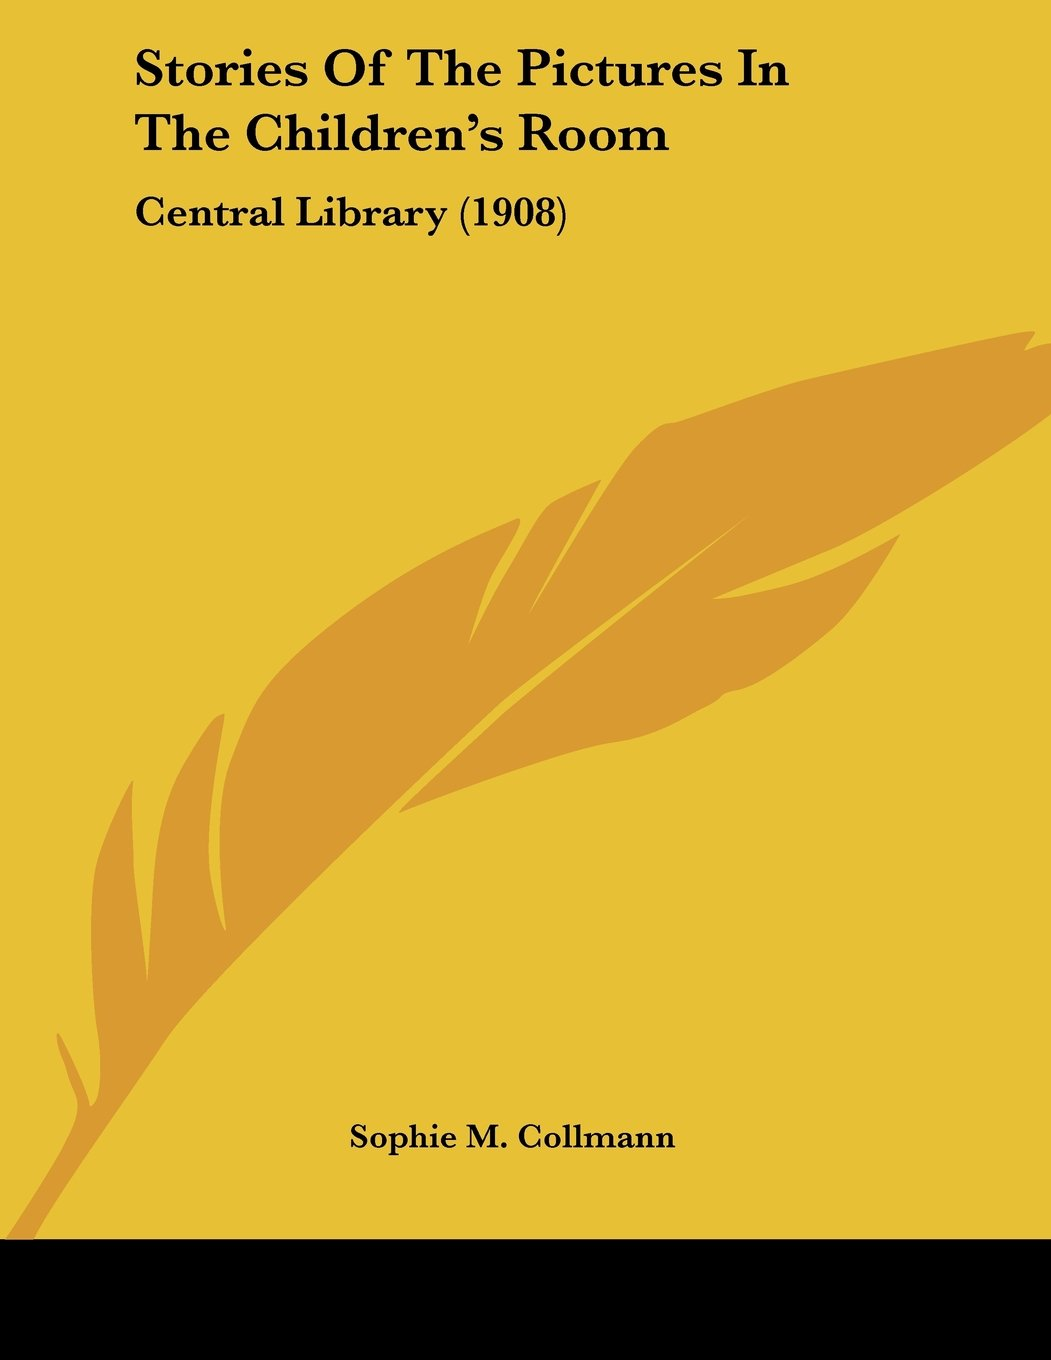 Download Stories Of The Pictures In The Children's Room: Central Library (1908) PDF